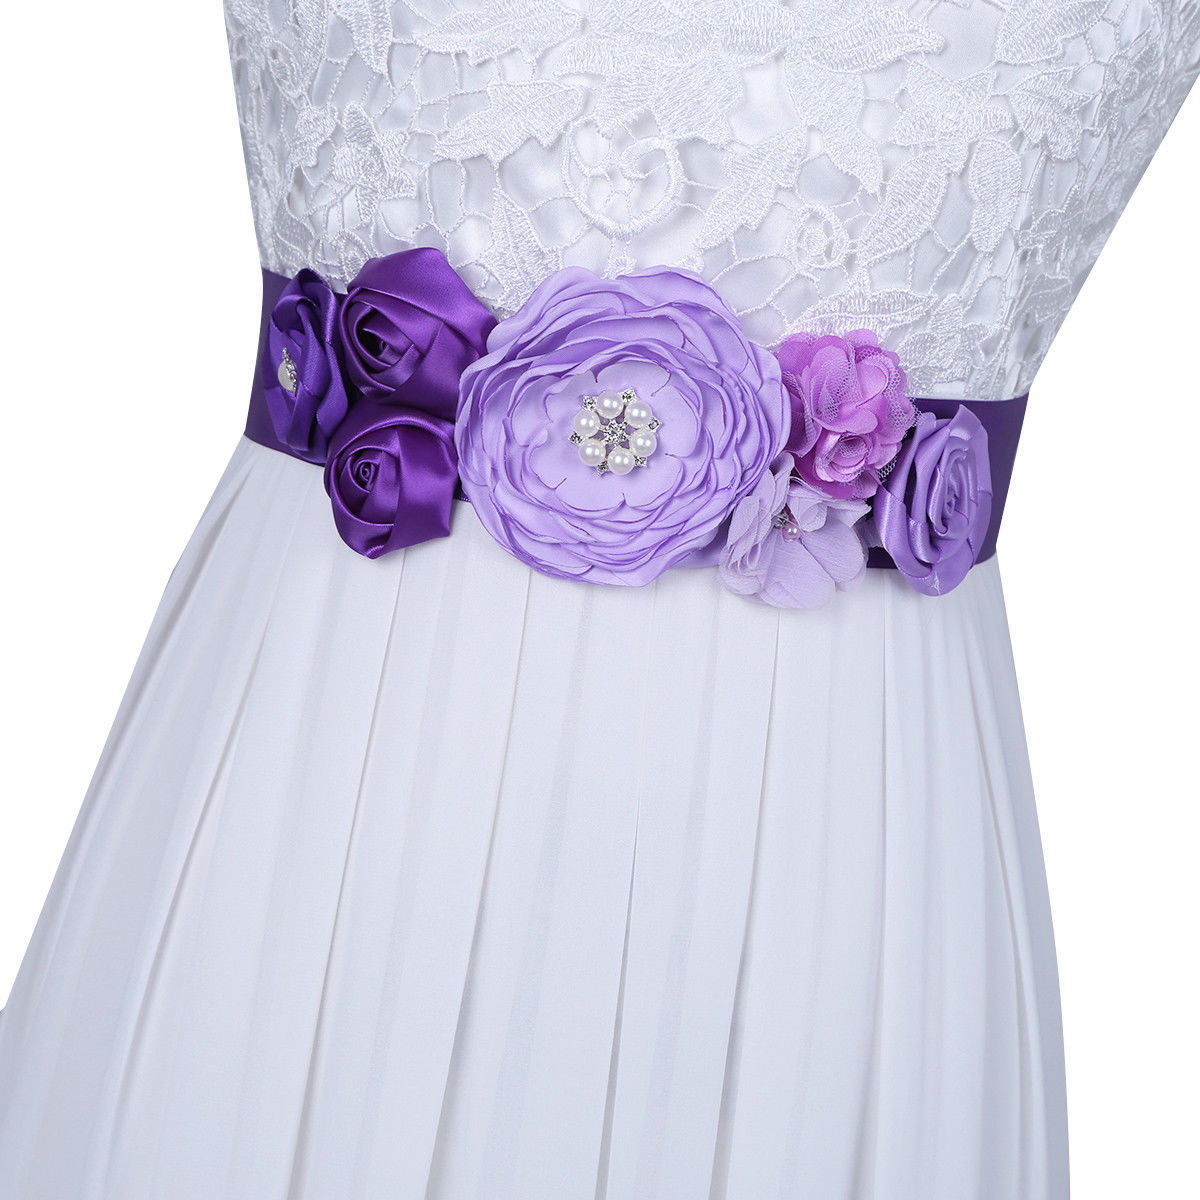 Flower Belts For Wedding Dresses: Handmade Beauty Kids Satin Silk 3D Flower Bridal Sash Belt